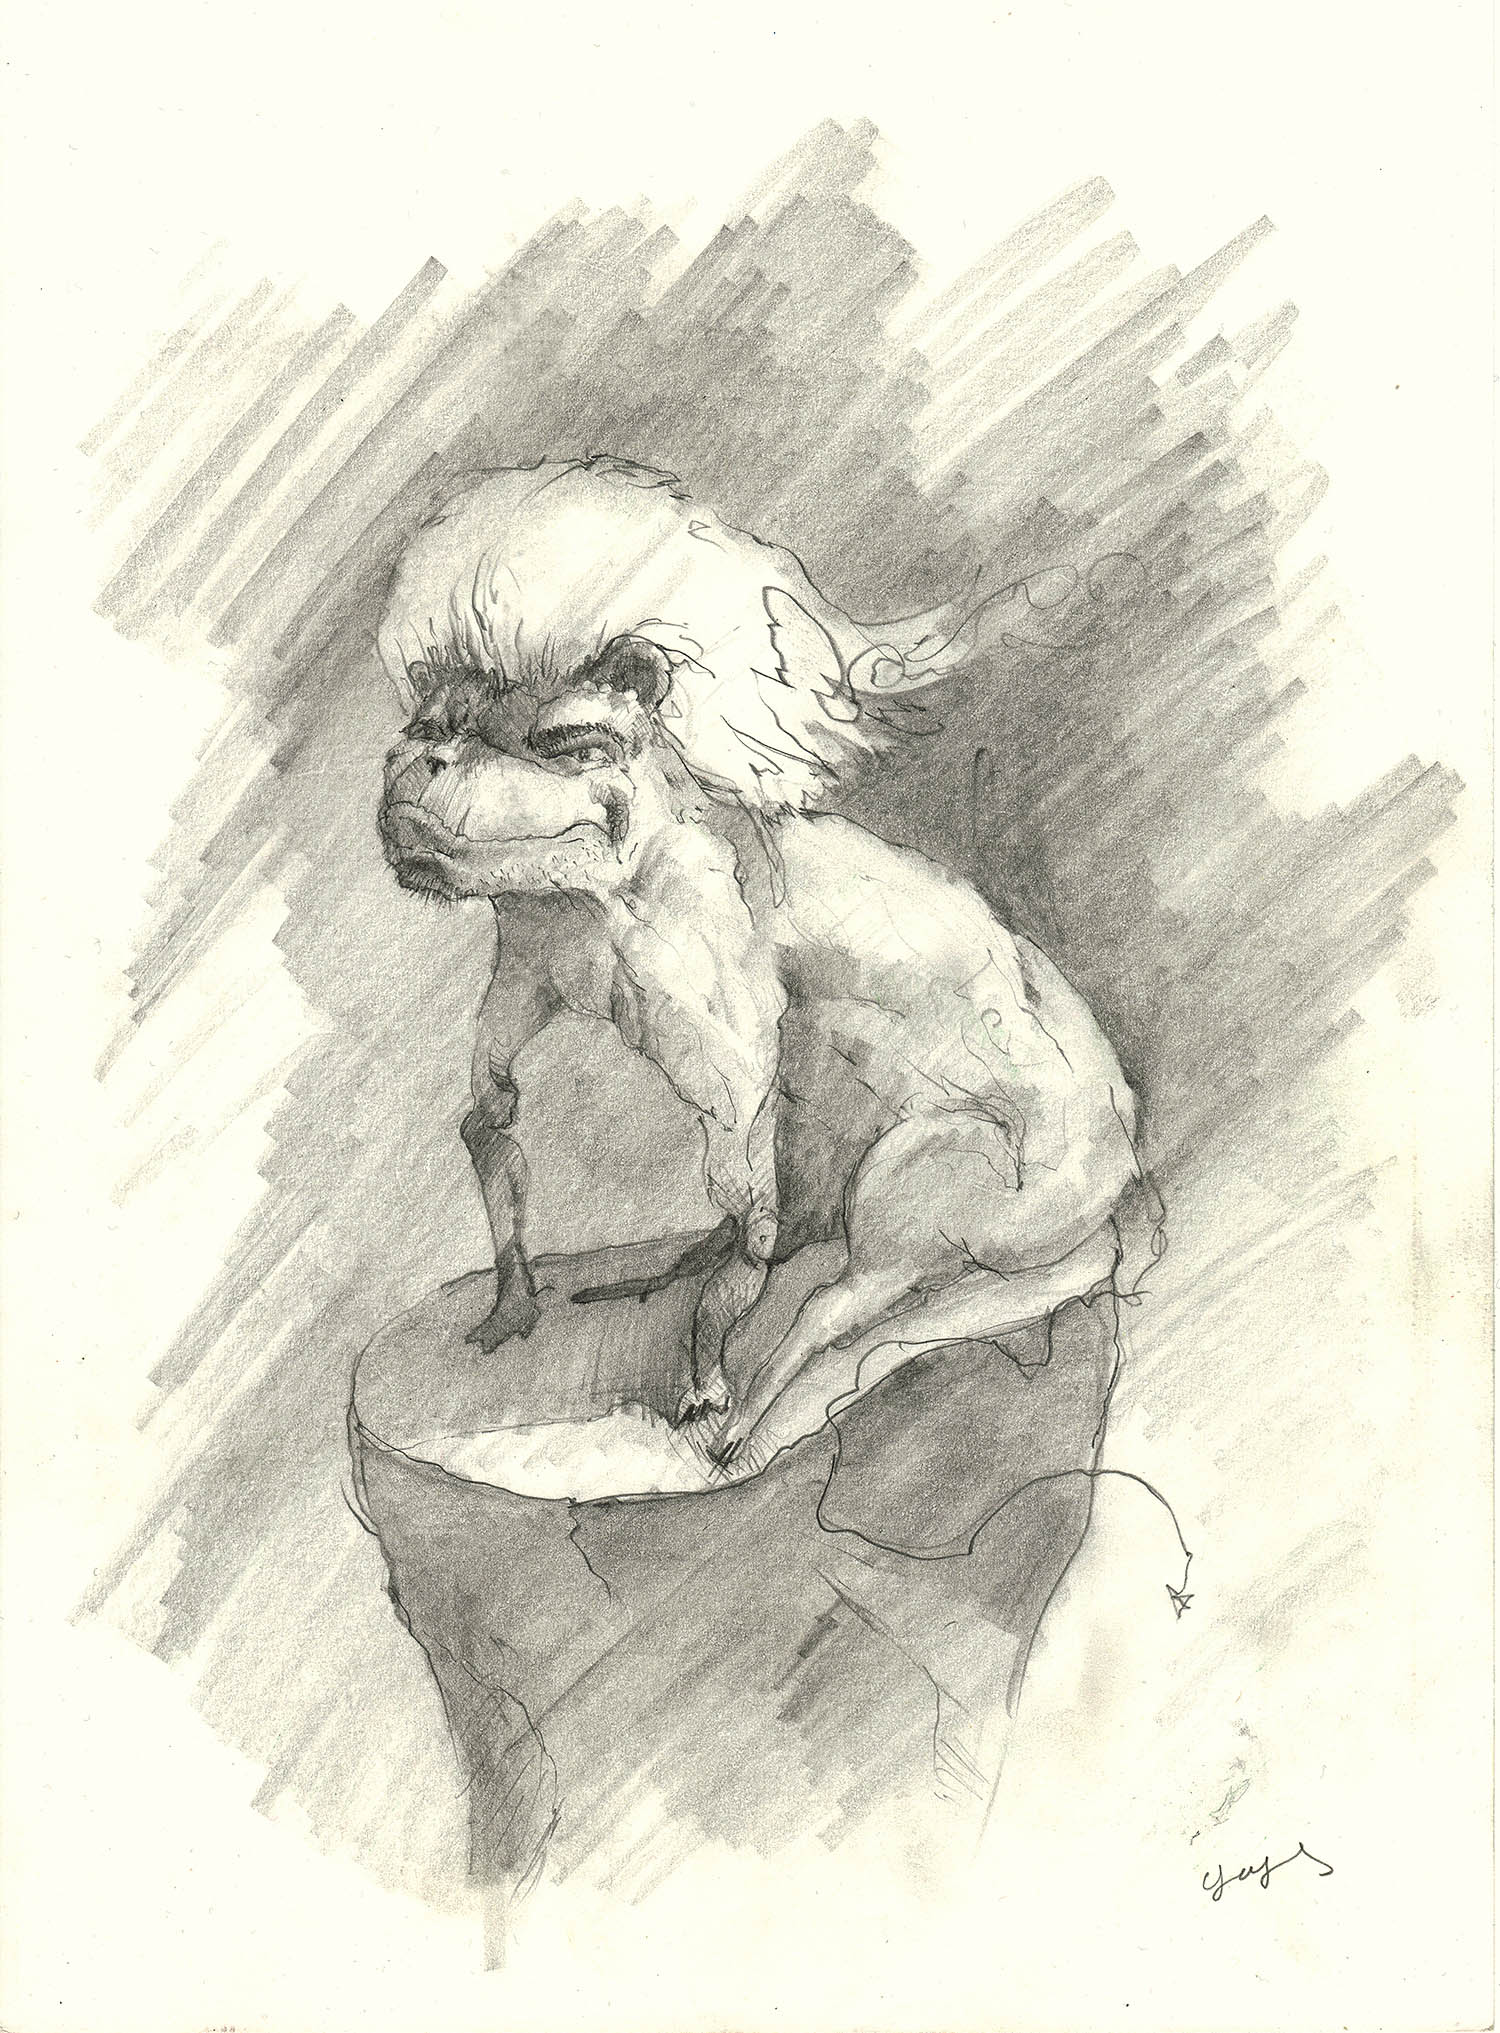 'Monster with Well-Groomed Hair (blond), Sitting', a fantasy character pencil drawing by Greek multidisciplinary artist Kostas Gogas.